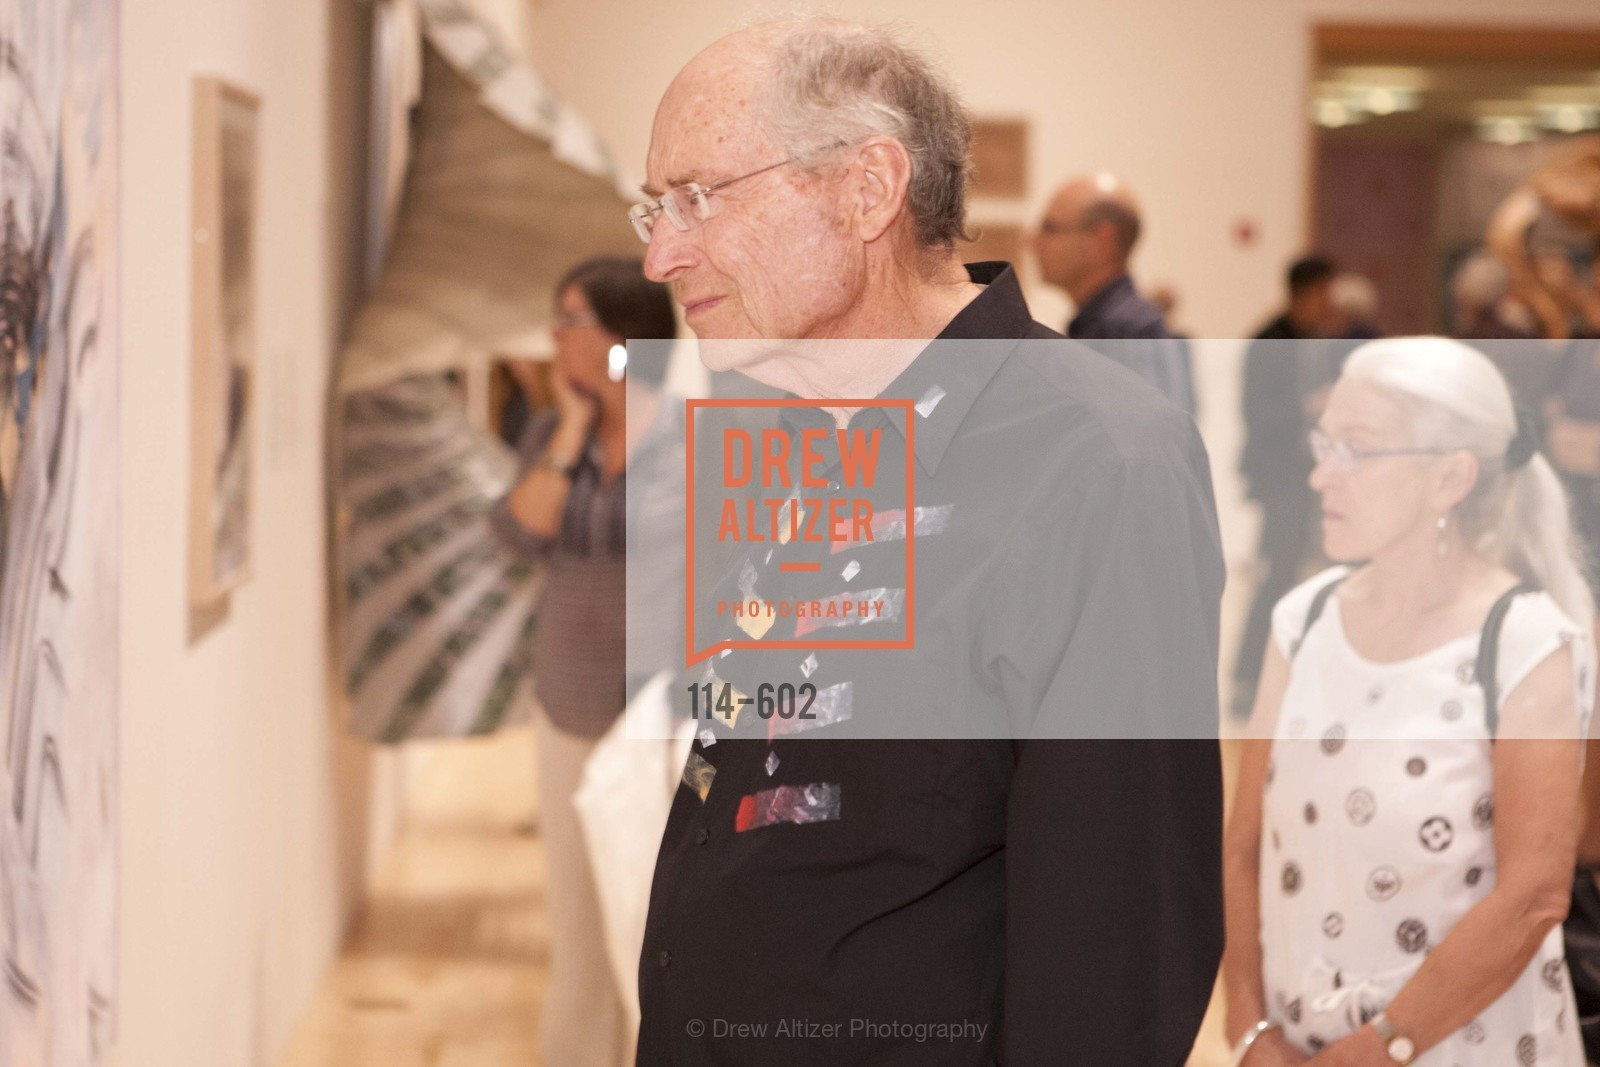 Extras, SAN JOSE MUSEUM OF ART Fall Reception Opening, October 9th, 2014, Photo,Drew Altizer, Drew Altizer Photography, full-service agency, private events, San Francisco photographer, photographer california